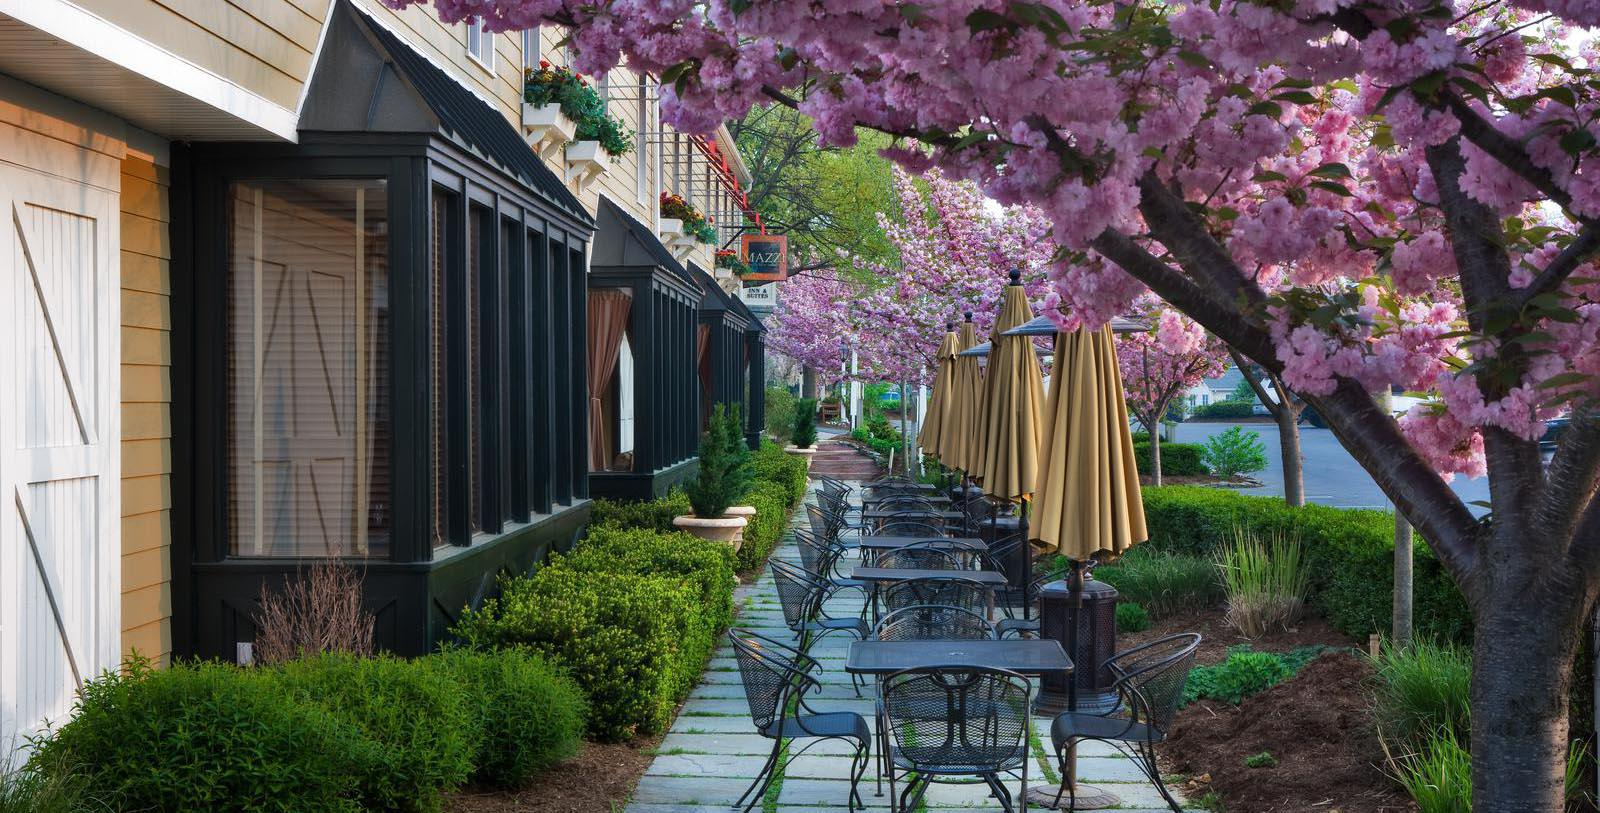 Image of Outdoor Dining Area The Inn at Leola Village, Est. 1867, 1867, Member of Historic Hotels of America, in Leola, Pennsylvania, Hot Deals